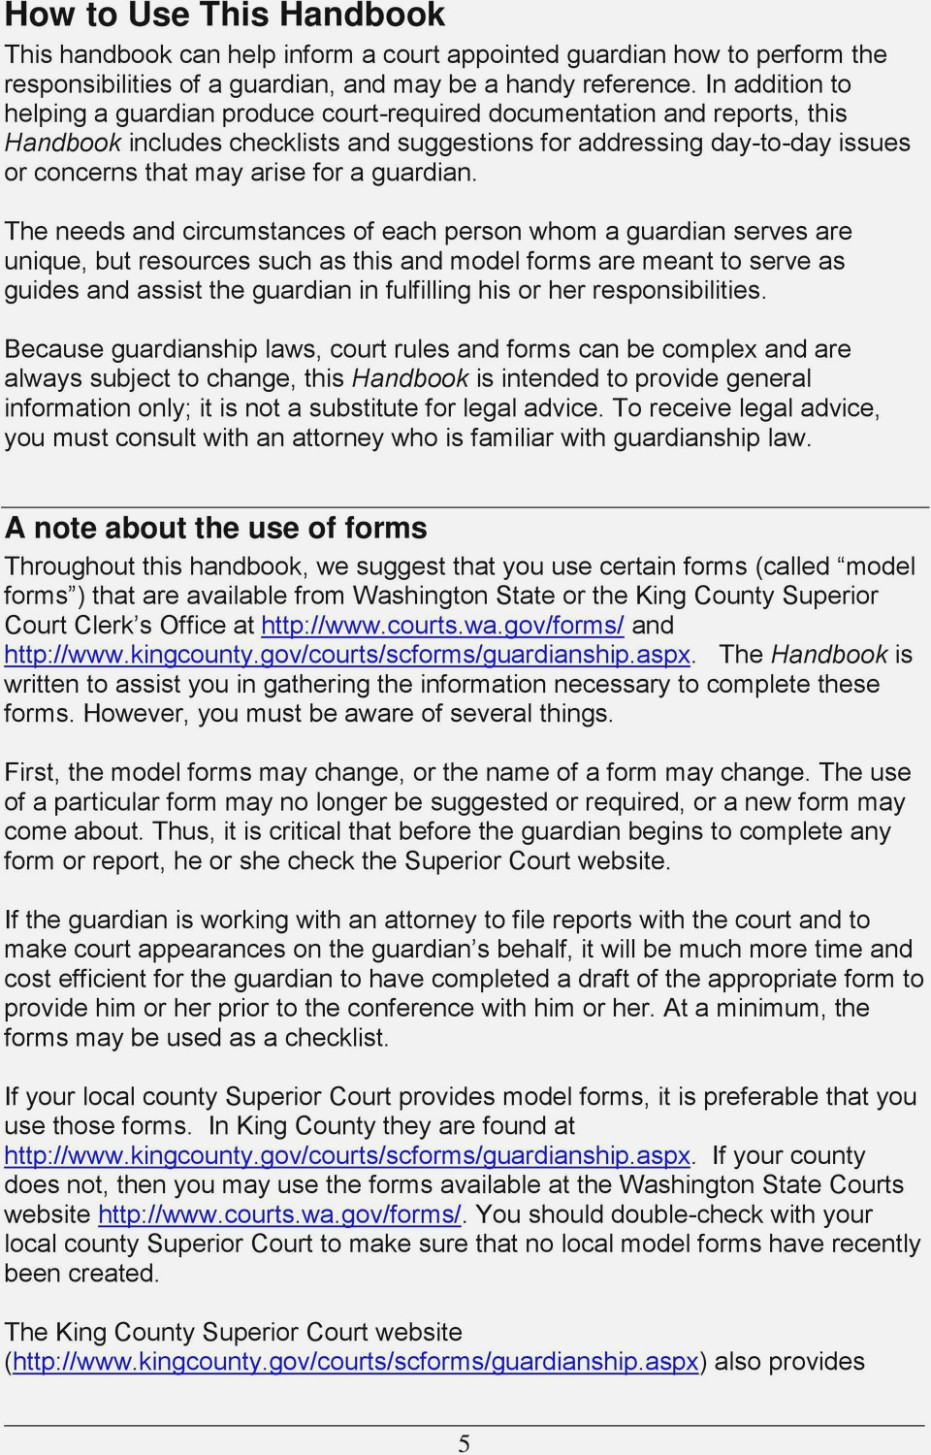 King County Court Forms